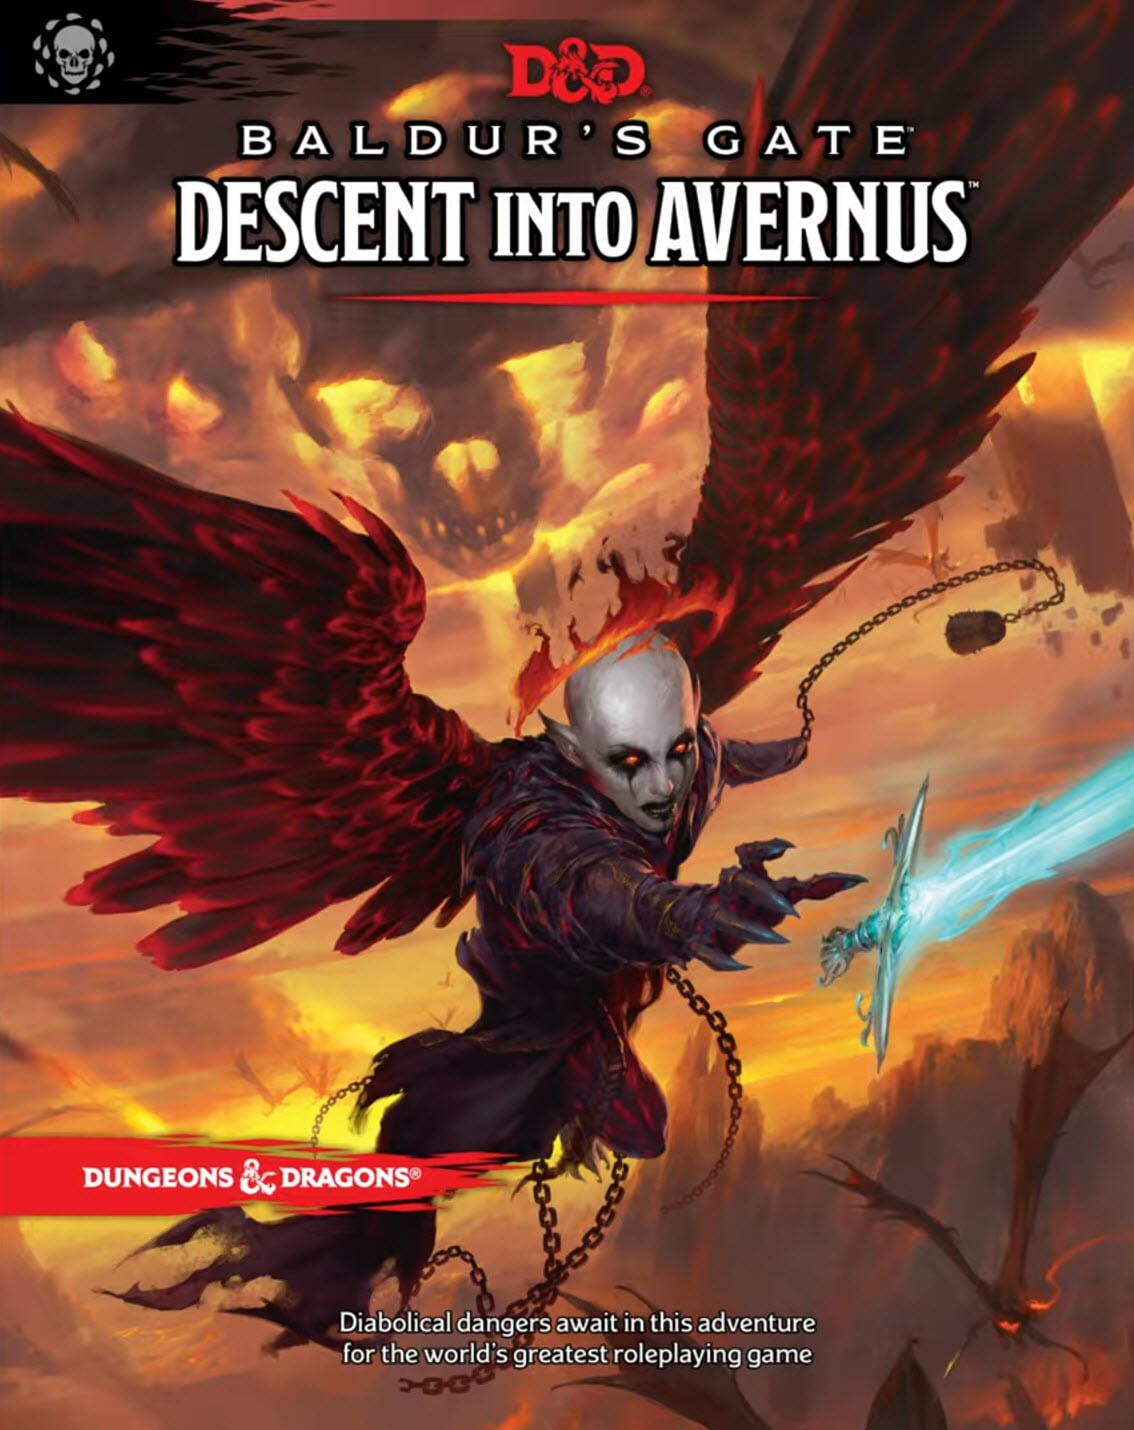 Baldur's Gate: Descent into Avernus | Forgotten Realms Wiki | FANDOM